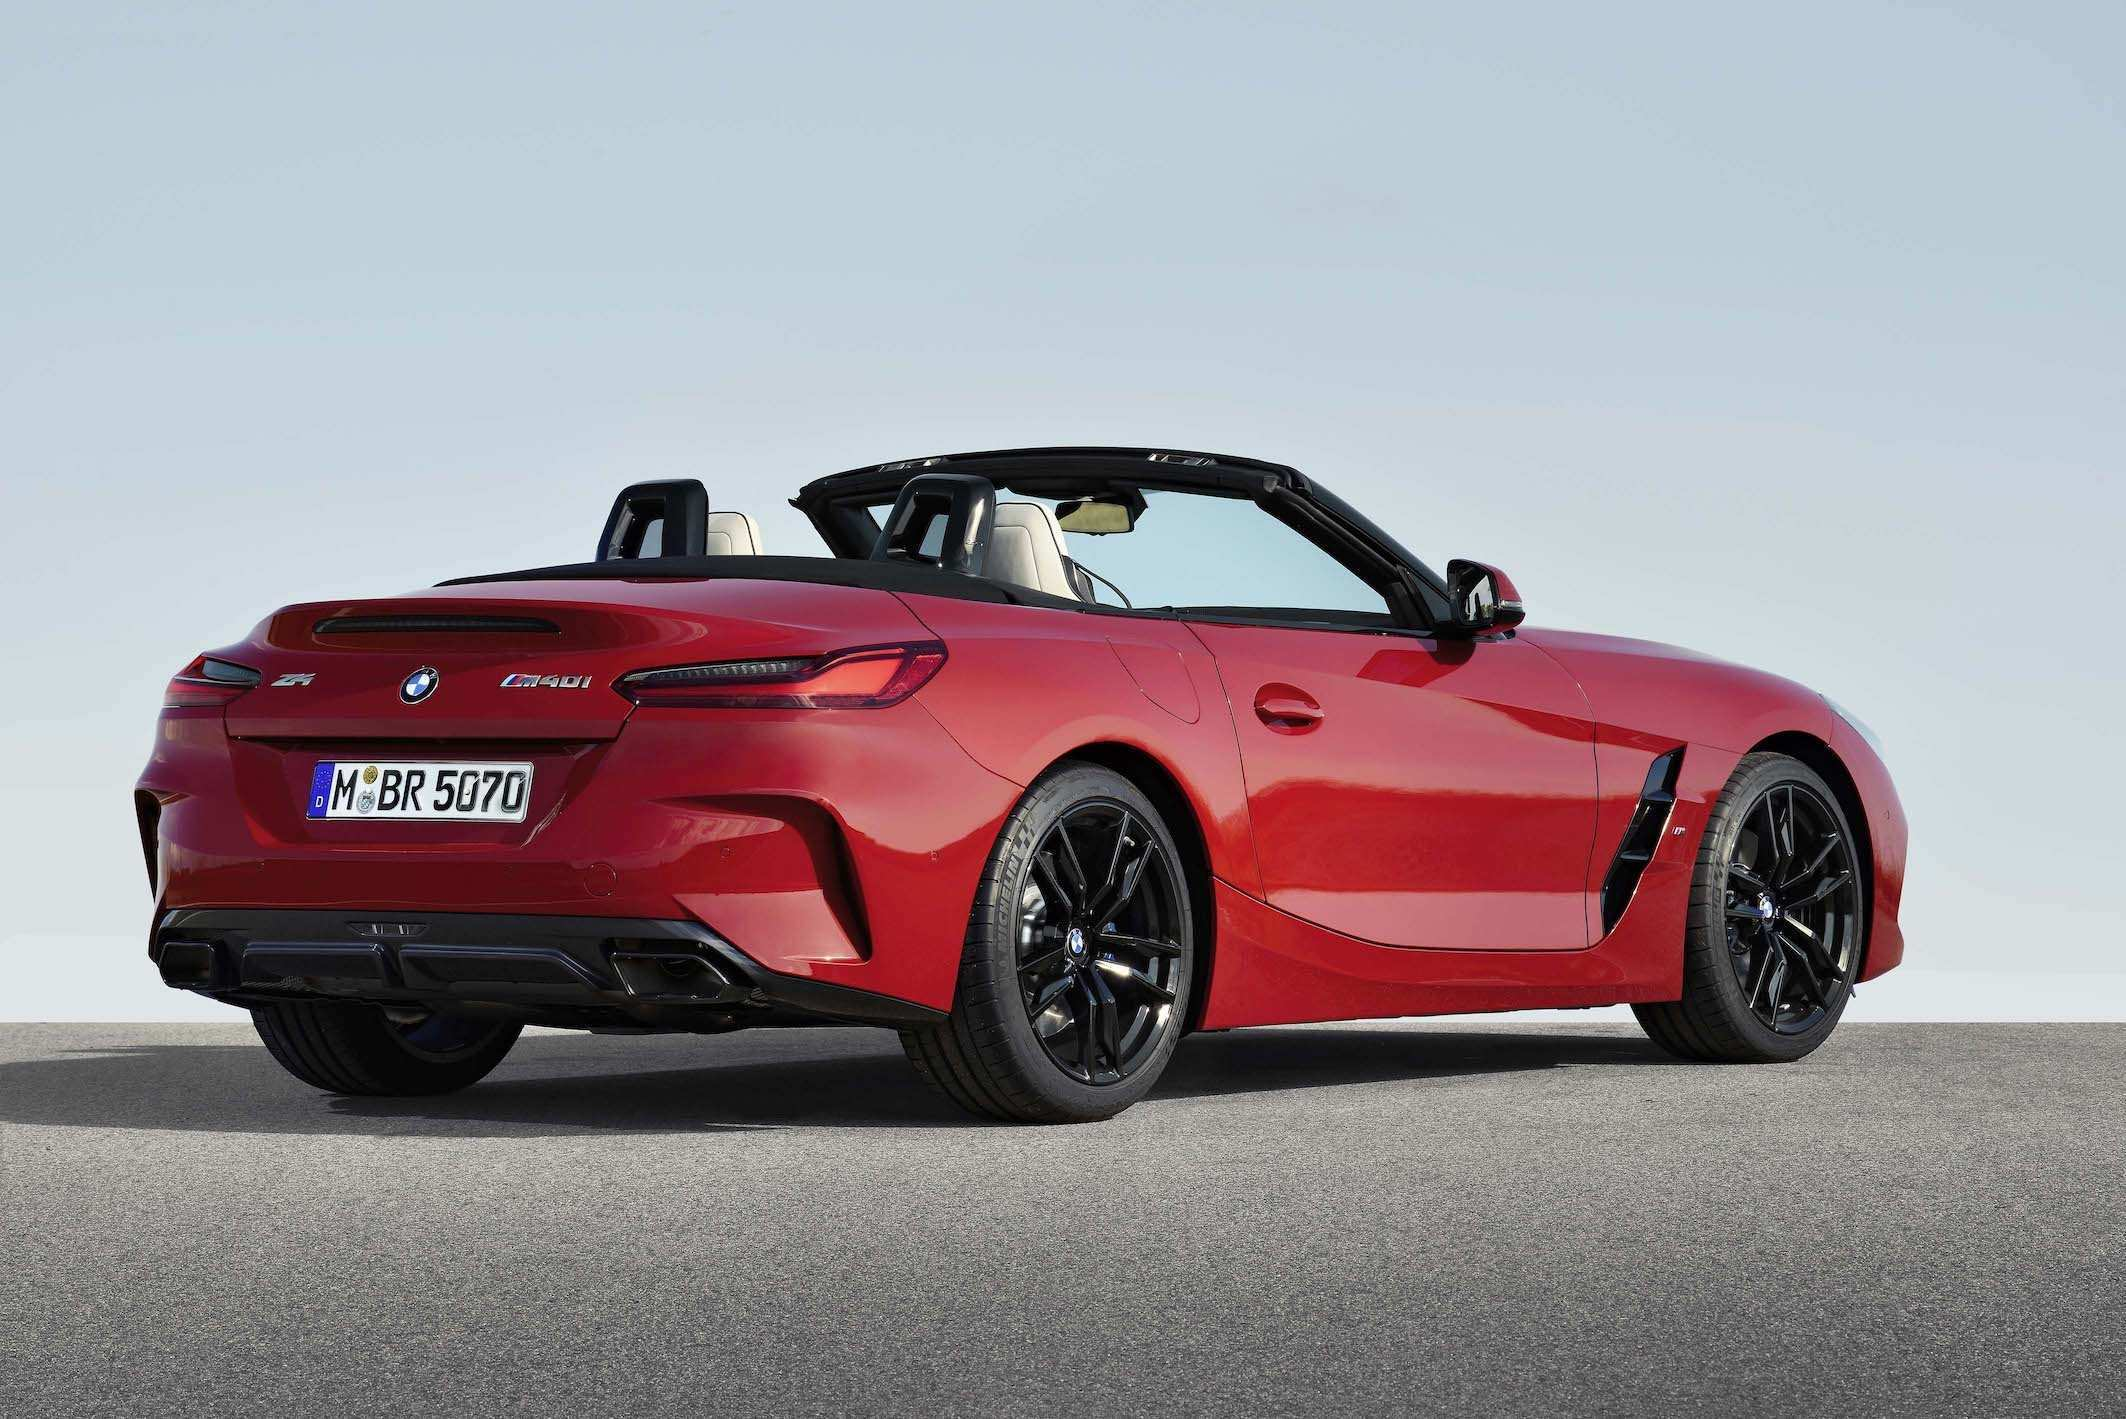 47 Concept of Bmw 2019 Z4 Price Price And Release Date Price with Bmw 2019 Z4 Price Price And Release Date